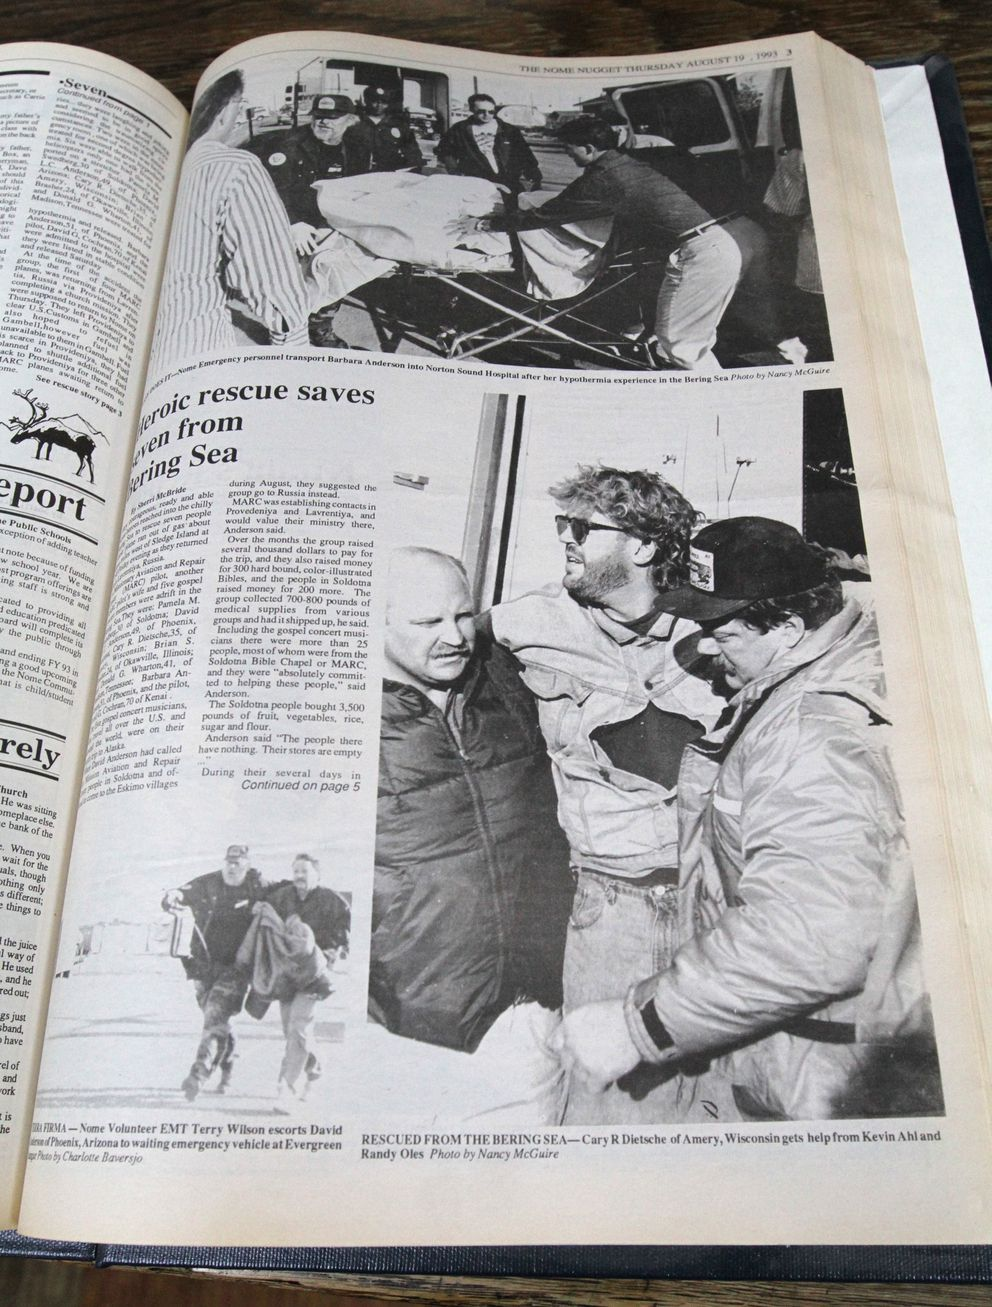 Coverage of the Aug. 13, 1993 Bering Sea rescue was printed in the Aug. 19, 1993 edition of the Nome Nugget. (Courtesy of the Nome Nugget)